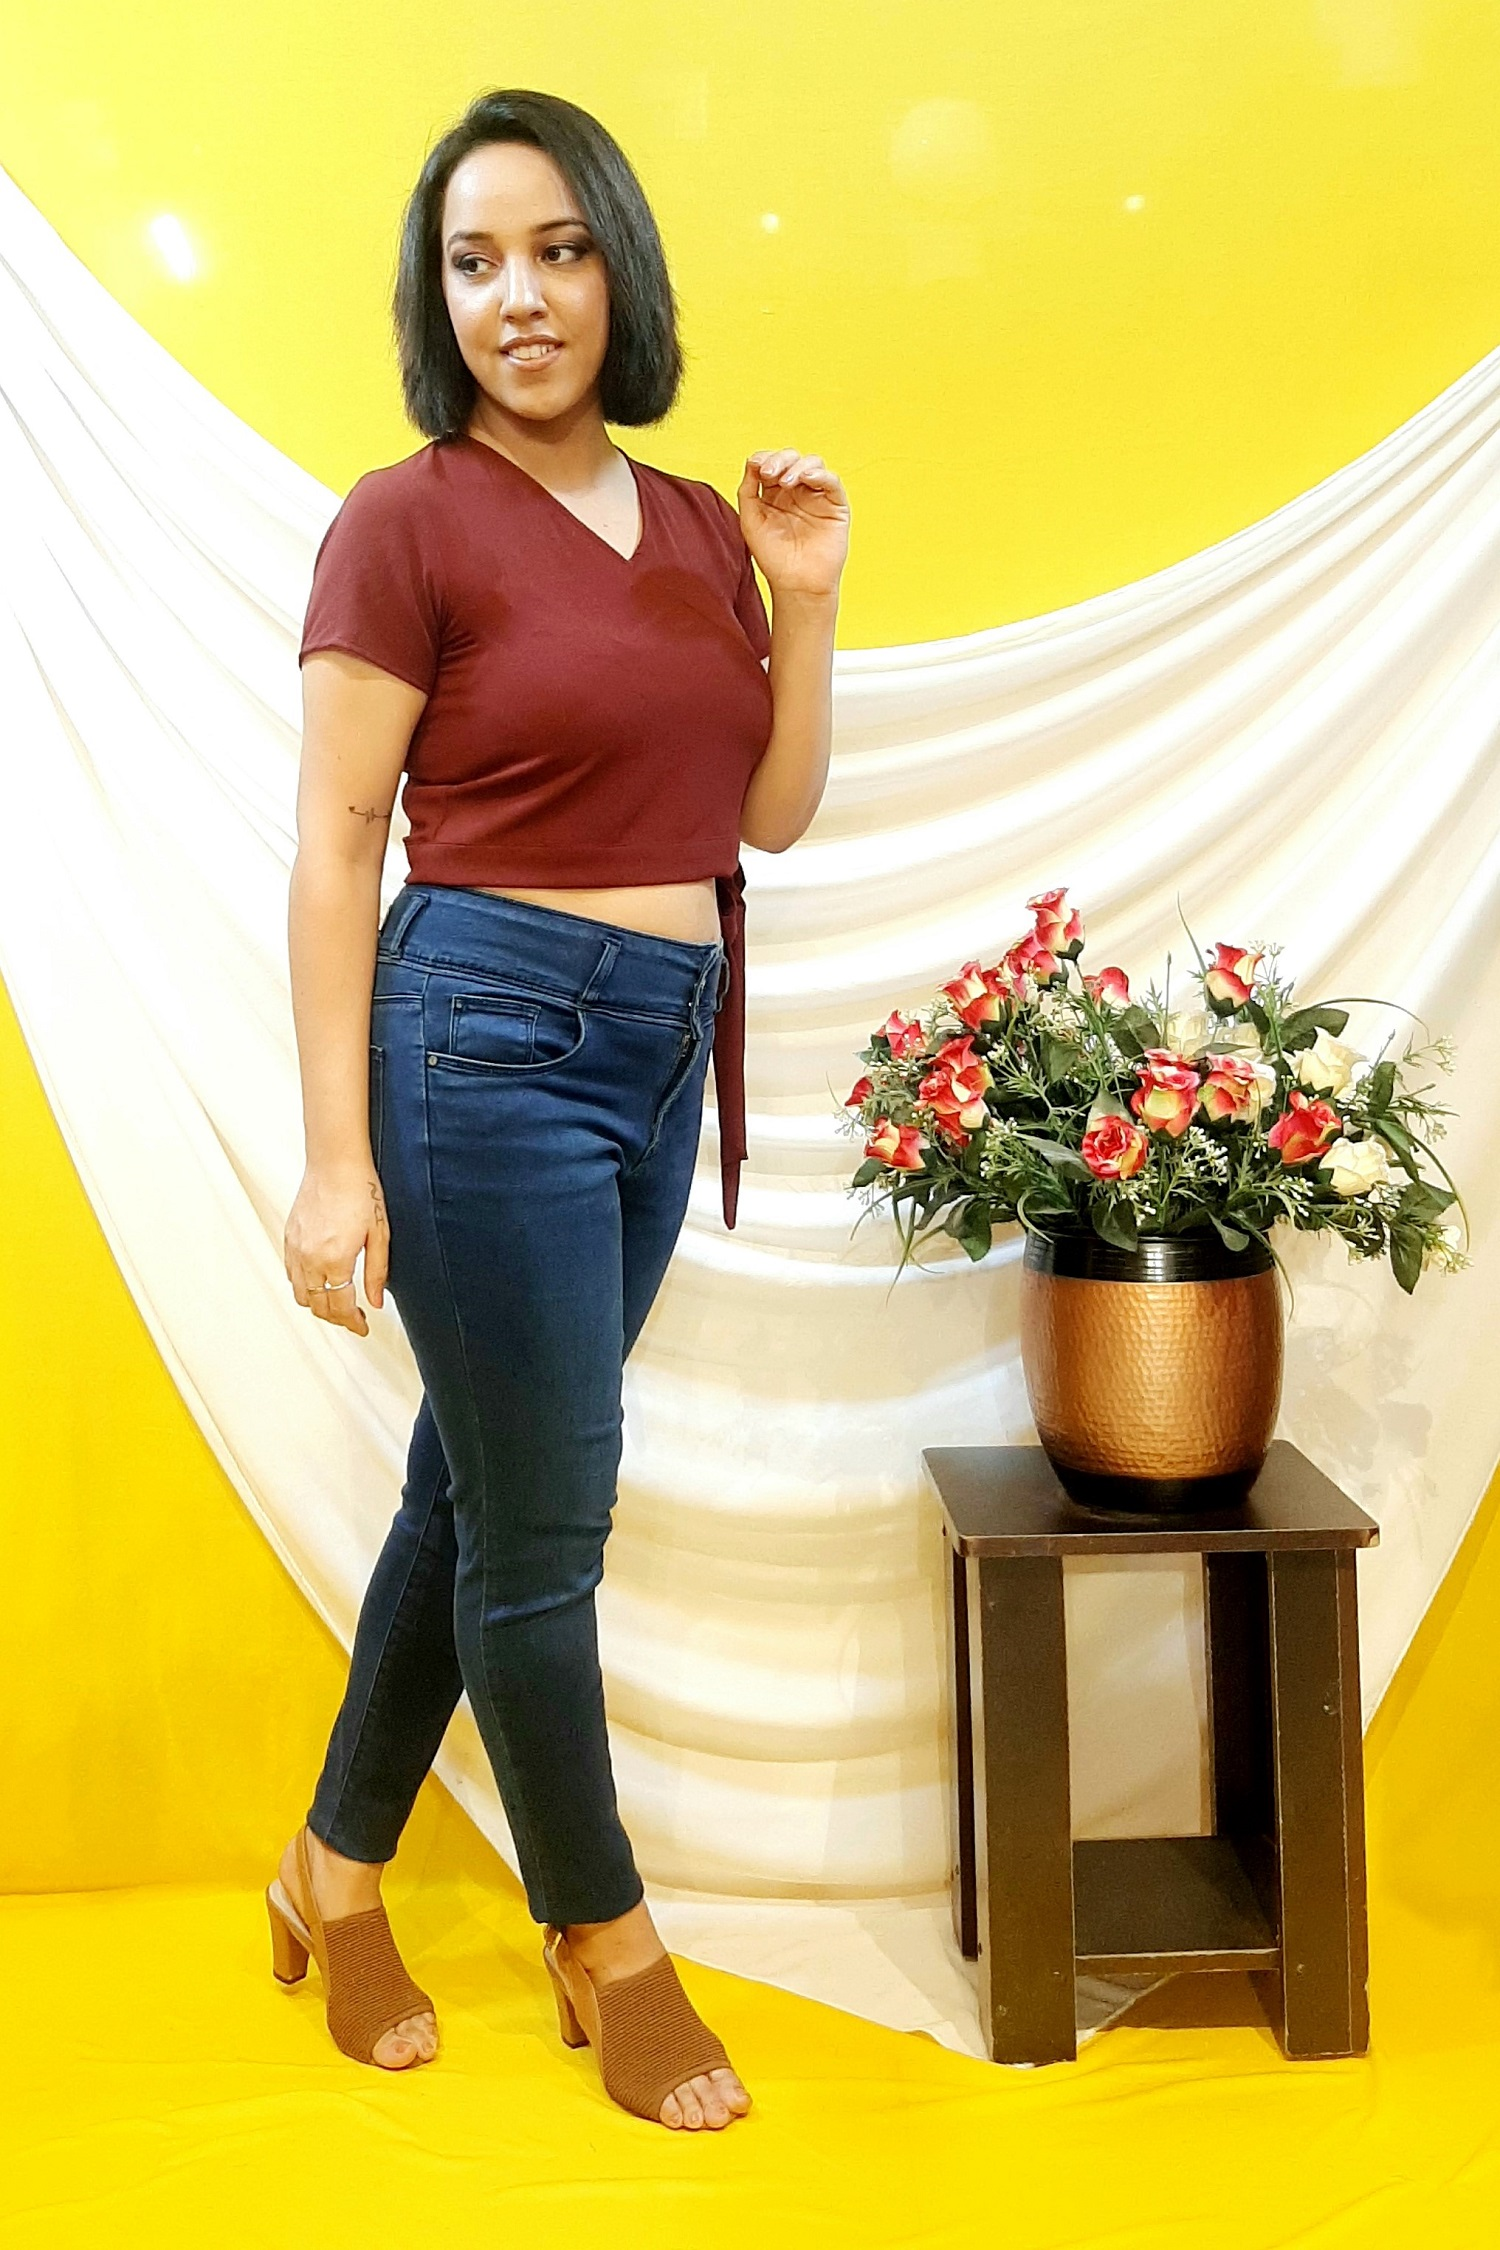 Folle Wine Crop Top With Belt At Waist For Party